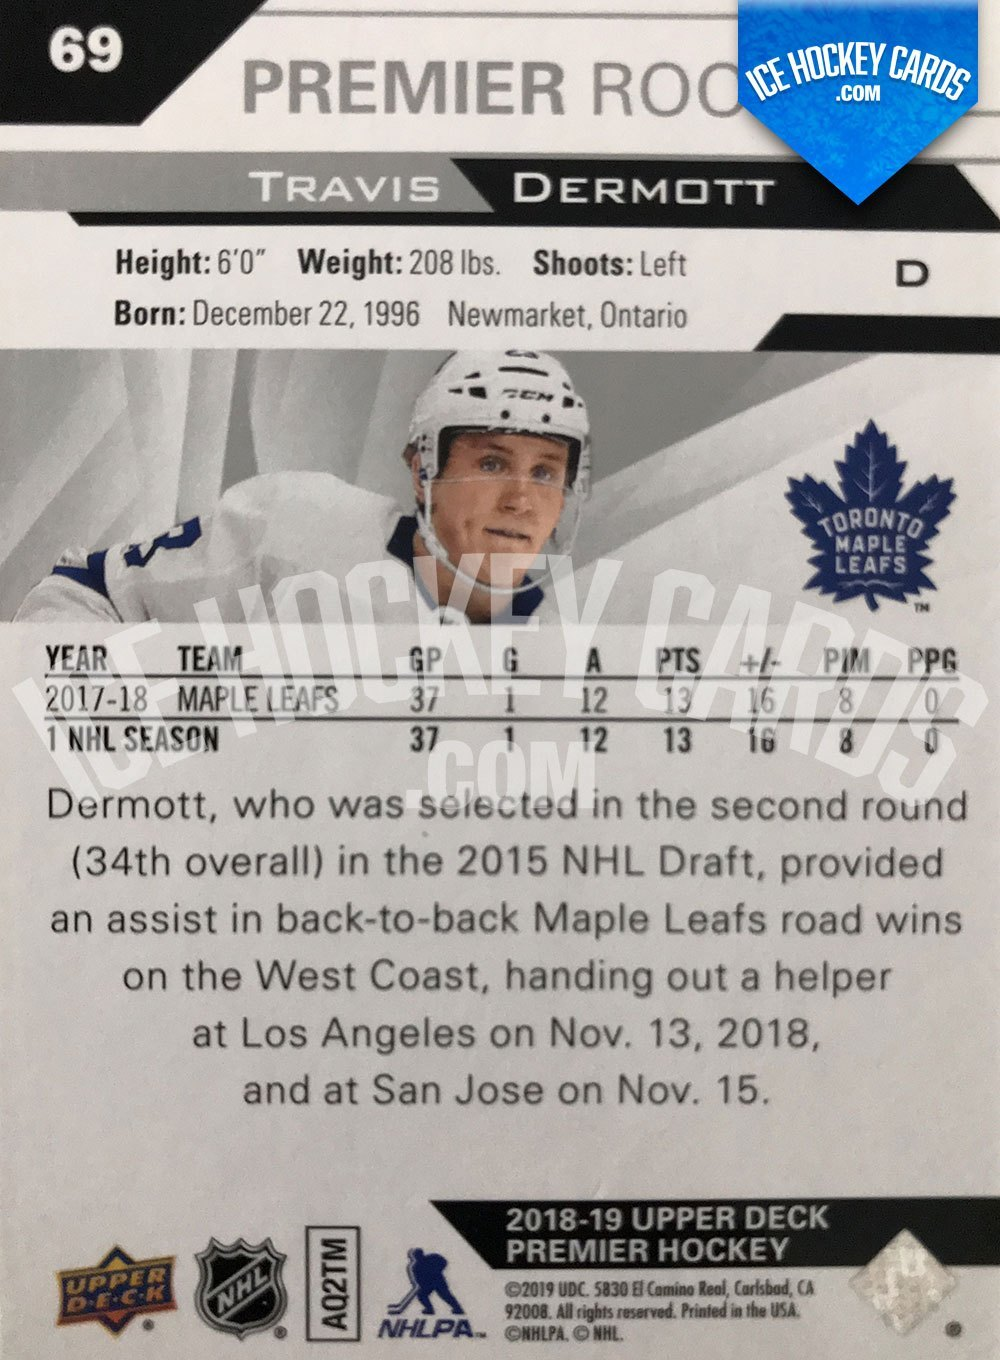 Upper Deck - Premier 2019-20 - Travis Dermott Base Rookie Card back